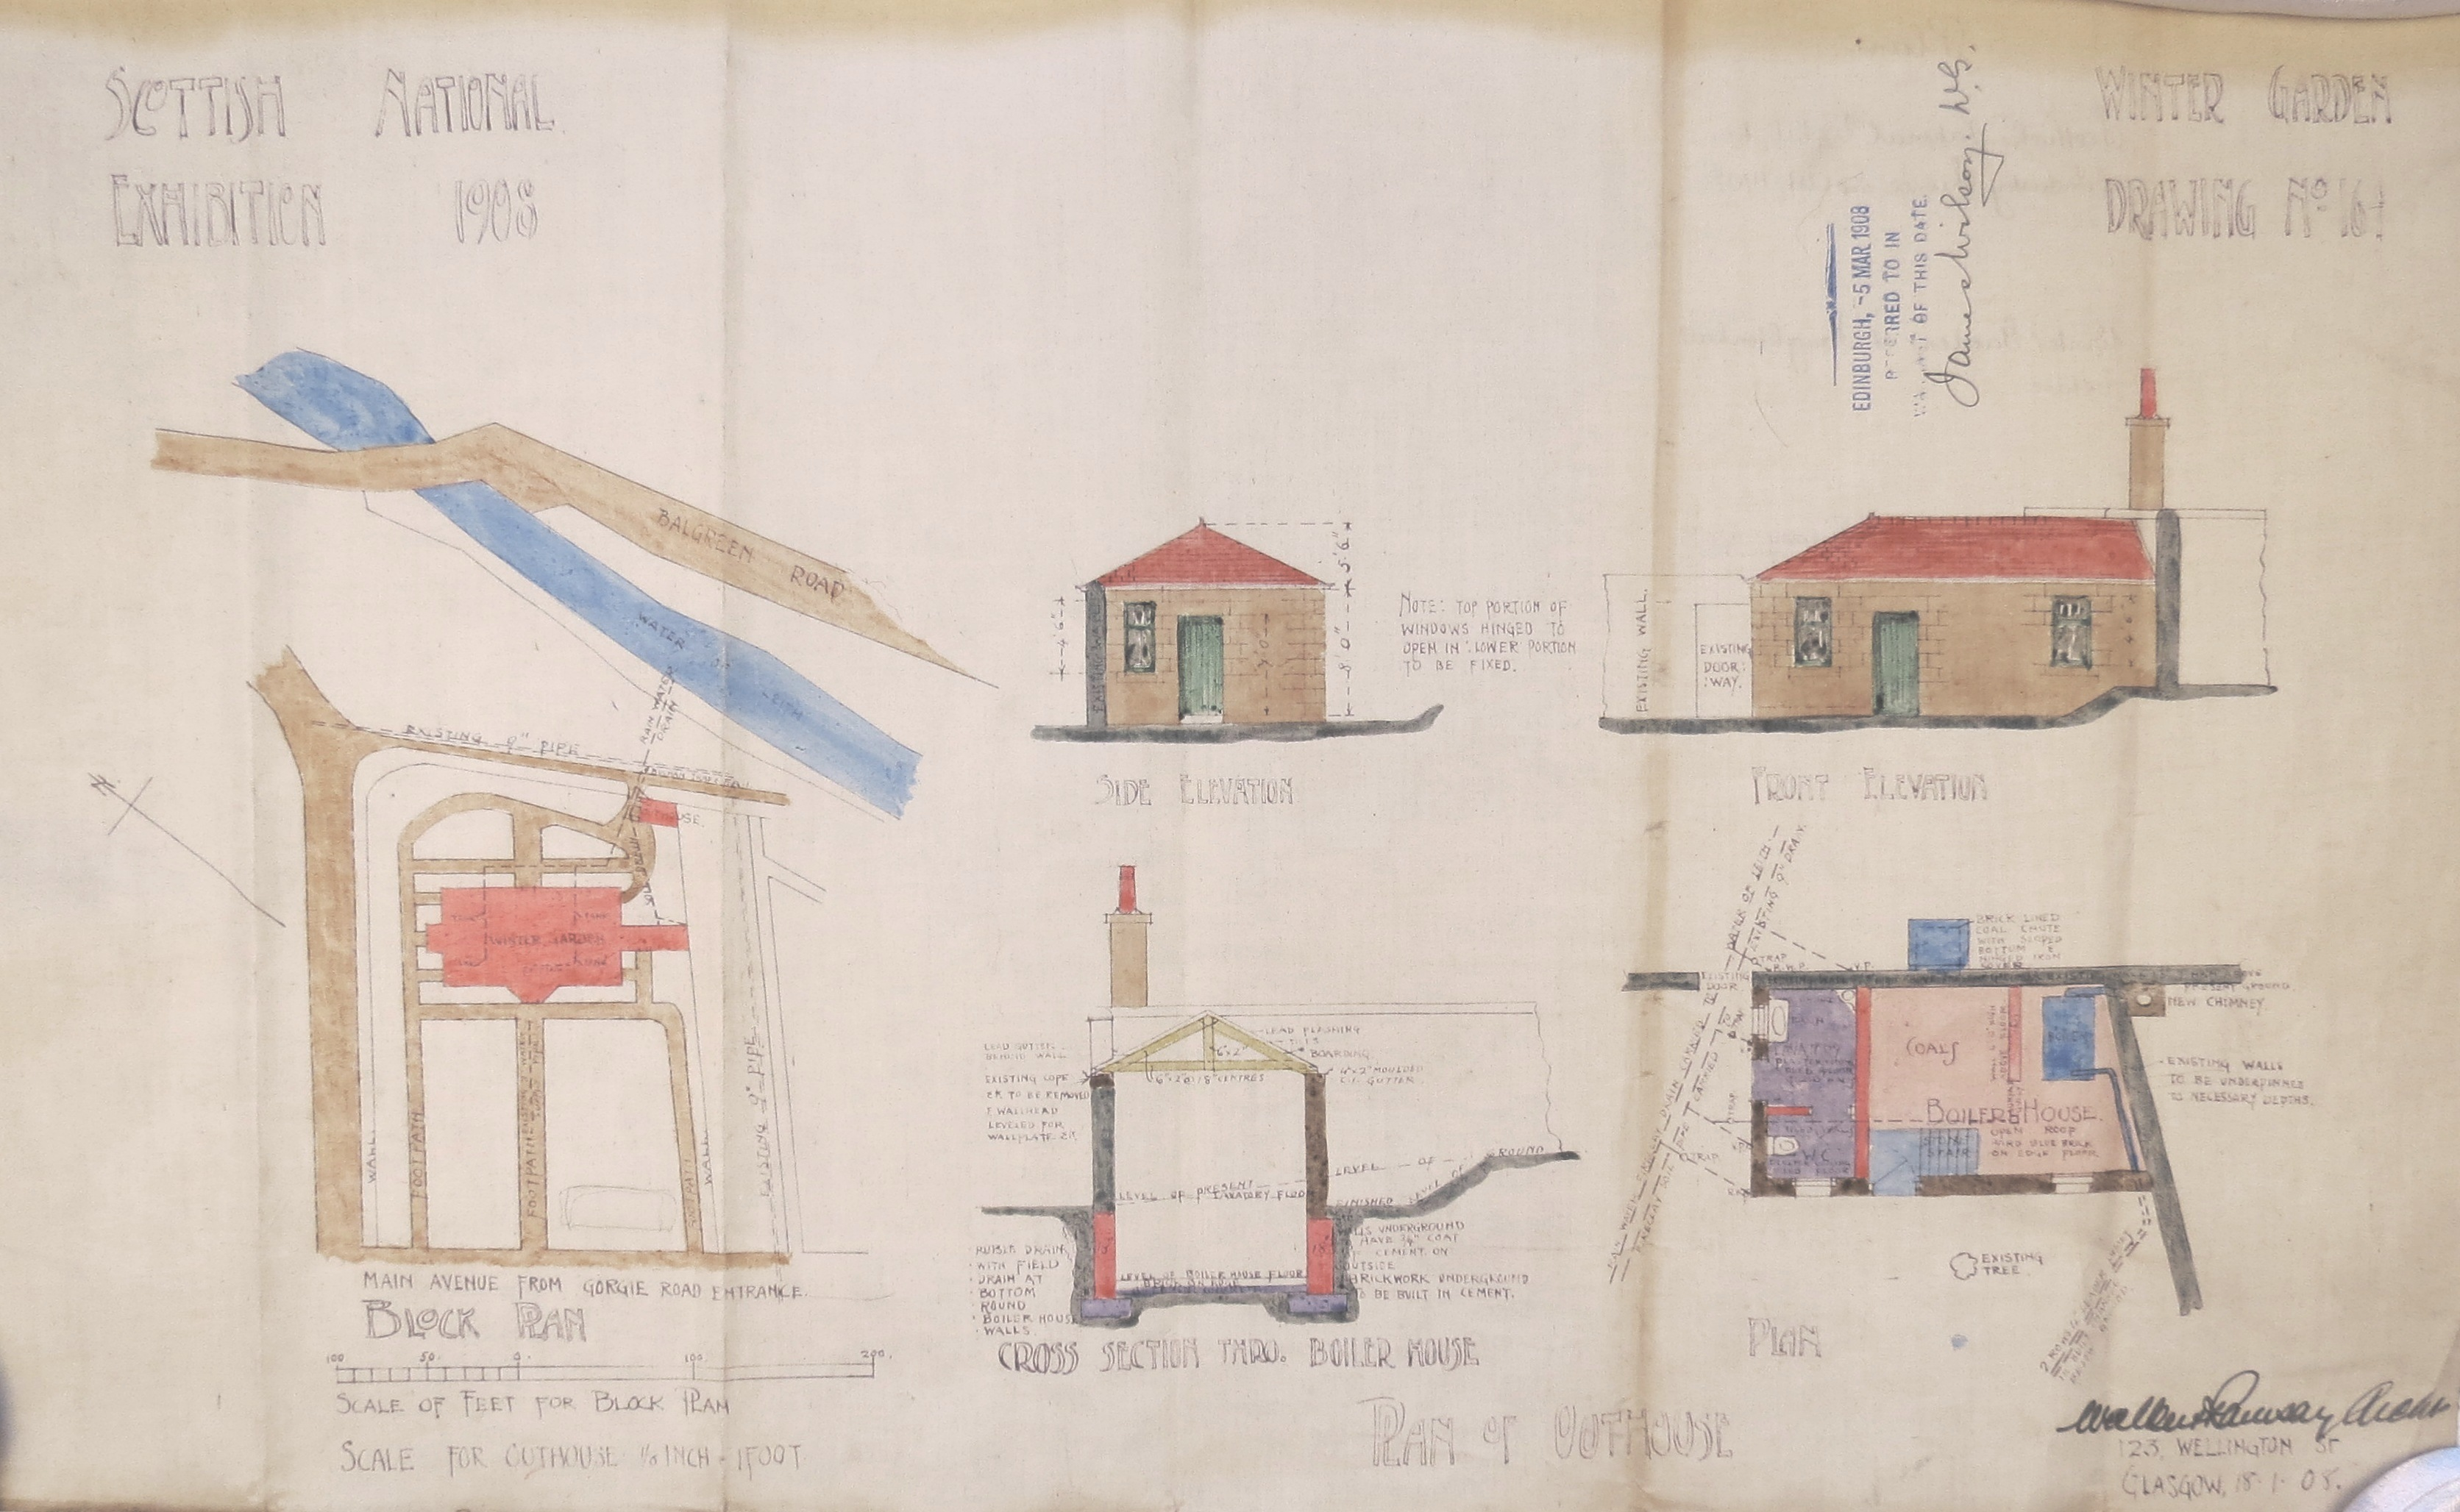 Scottish National Exhibition 1908, Winter Garden outhouse plan